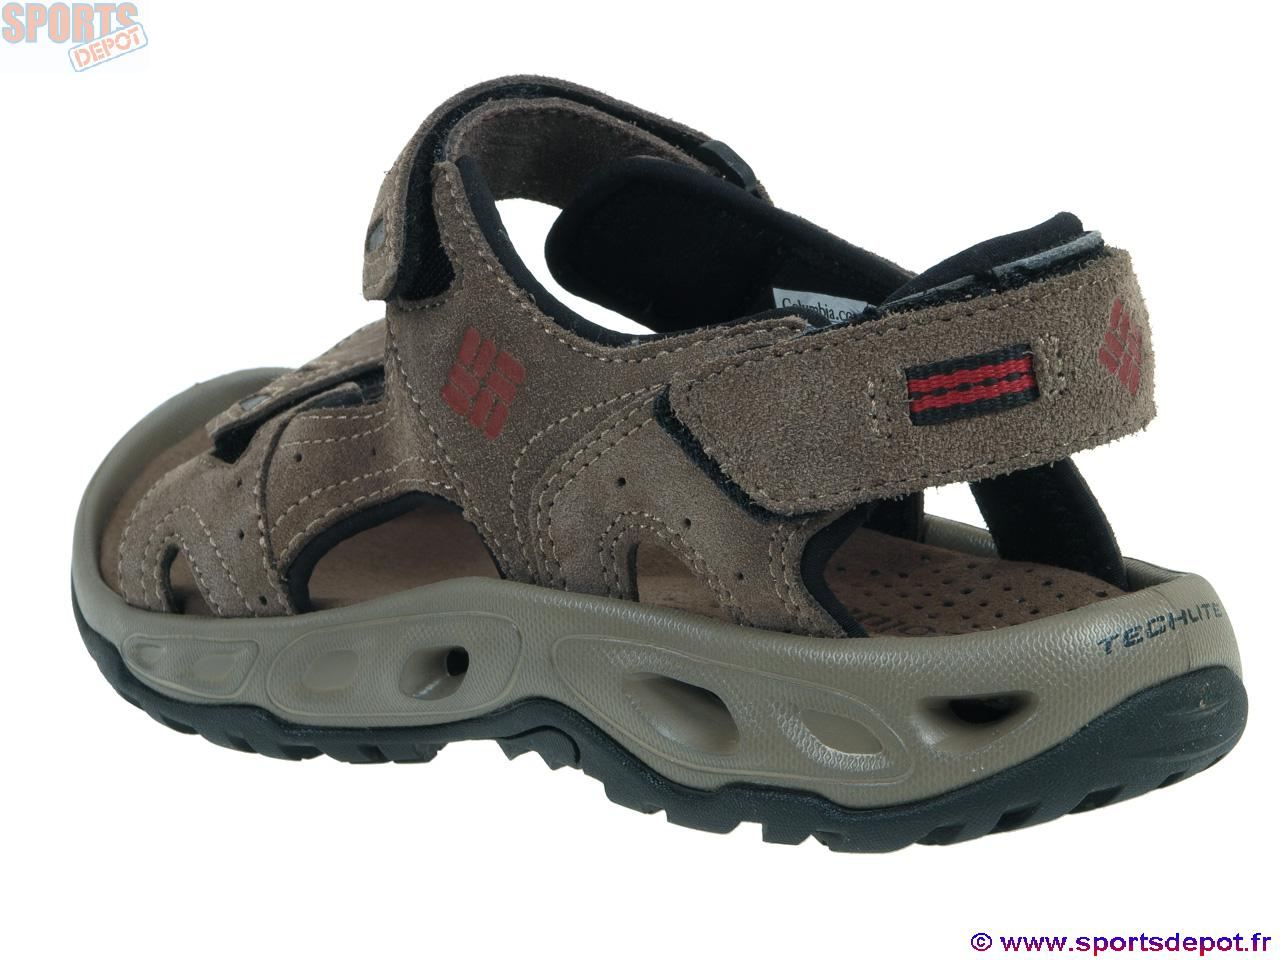 Ete Chaussures Ete Columbia Chaussures Ete Columbia Chaussures FxTr7nF